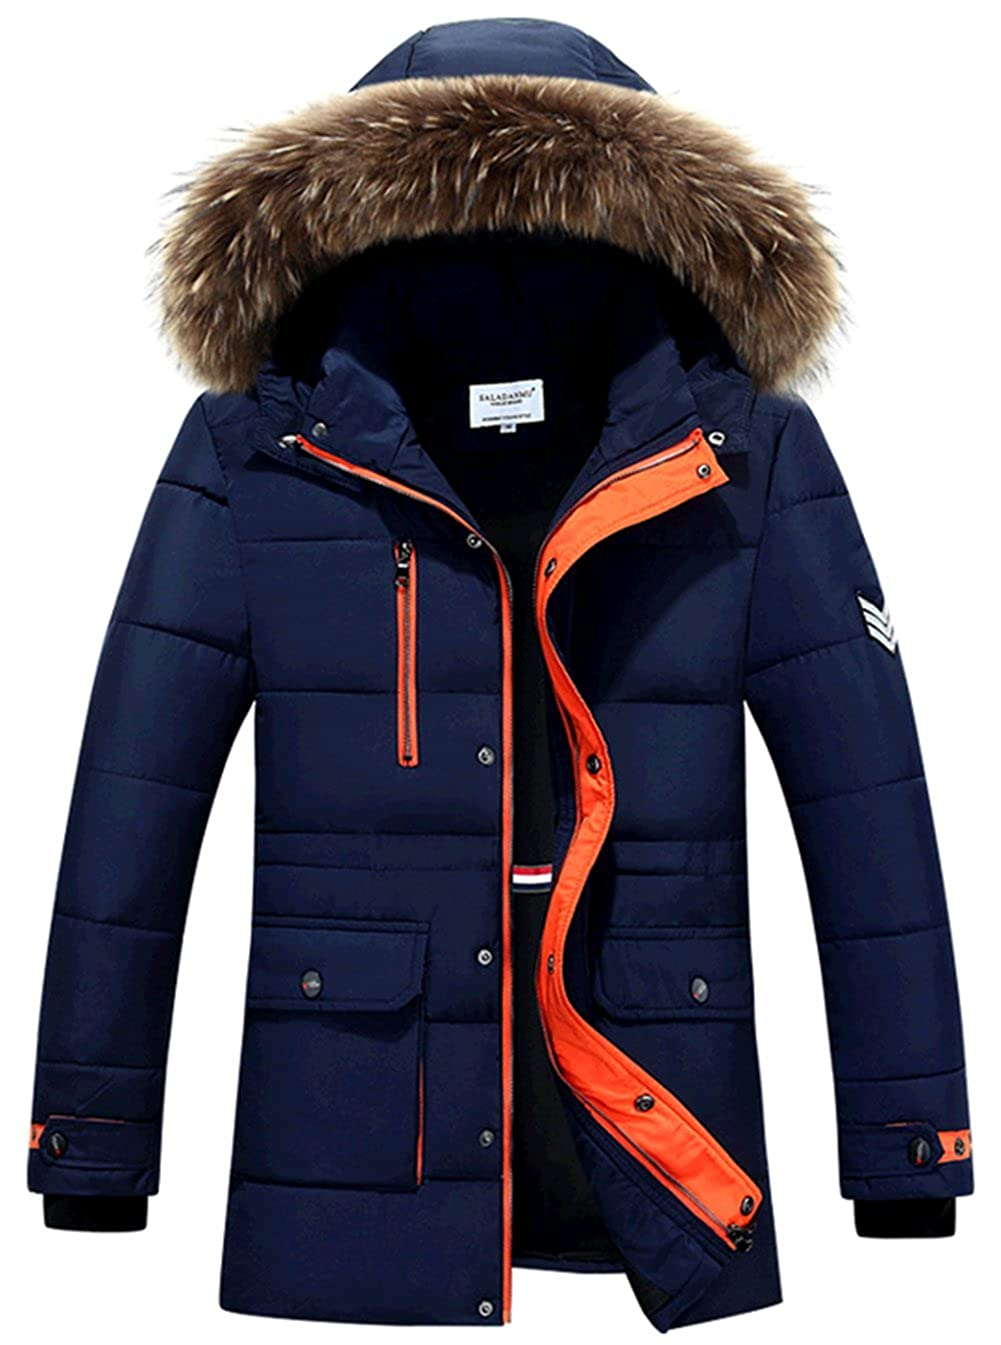 K3K Hot! New Winter Men's Fur Collar Fashion Long Hood Warm Coat